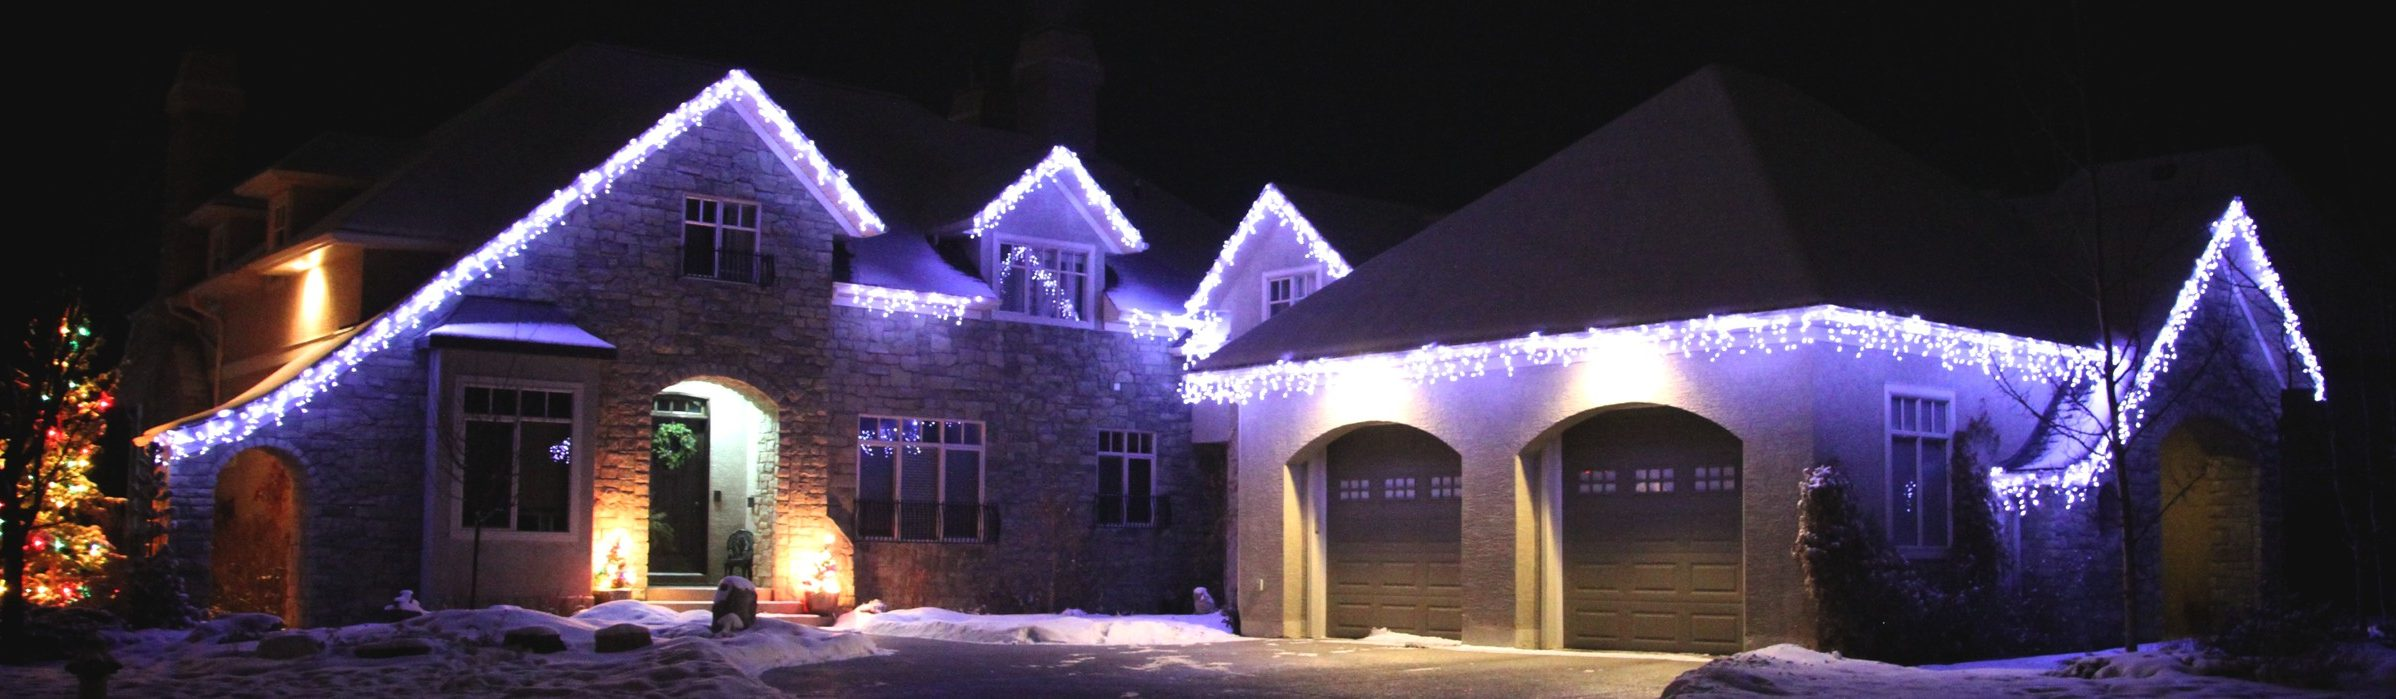 commercial services contact us - Christmas Light Installation Prices